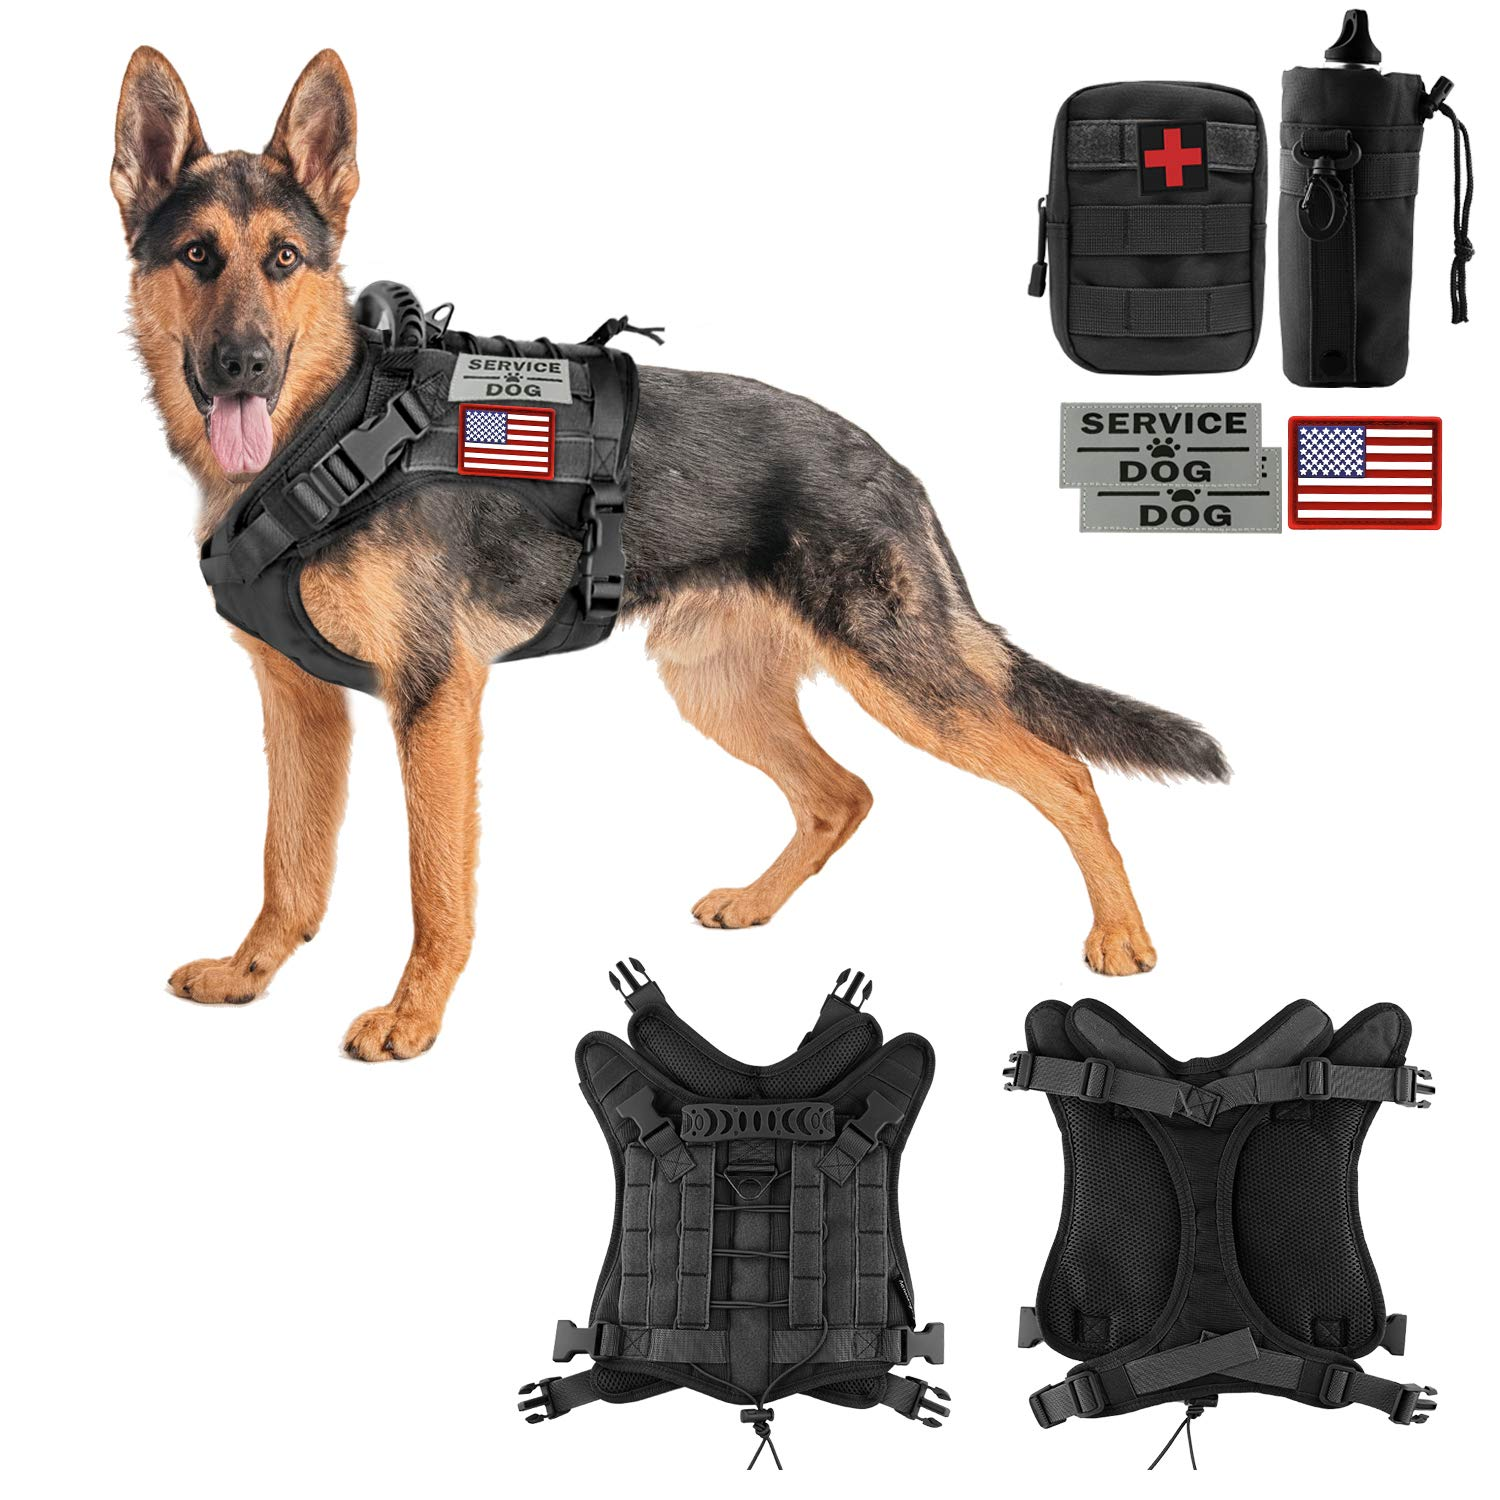 Hanshengday Tactical Dog Vest-Training Outdoor Breathable Harness-Military Water-Resistant Dog Backpack-Pet Tactical -Vest Detachable Pouches-D Ring for Dog Leash (XL, 02Black)